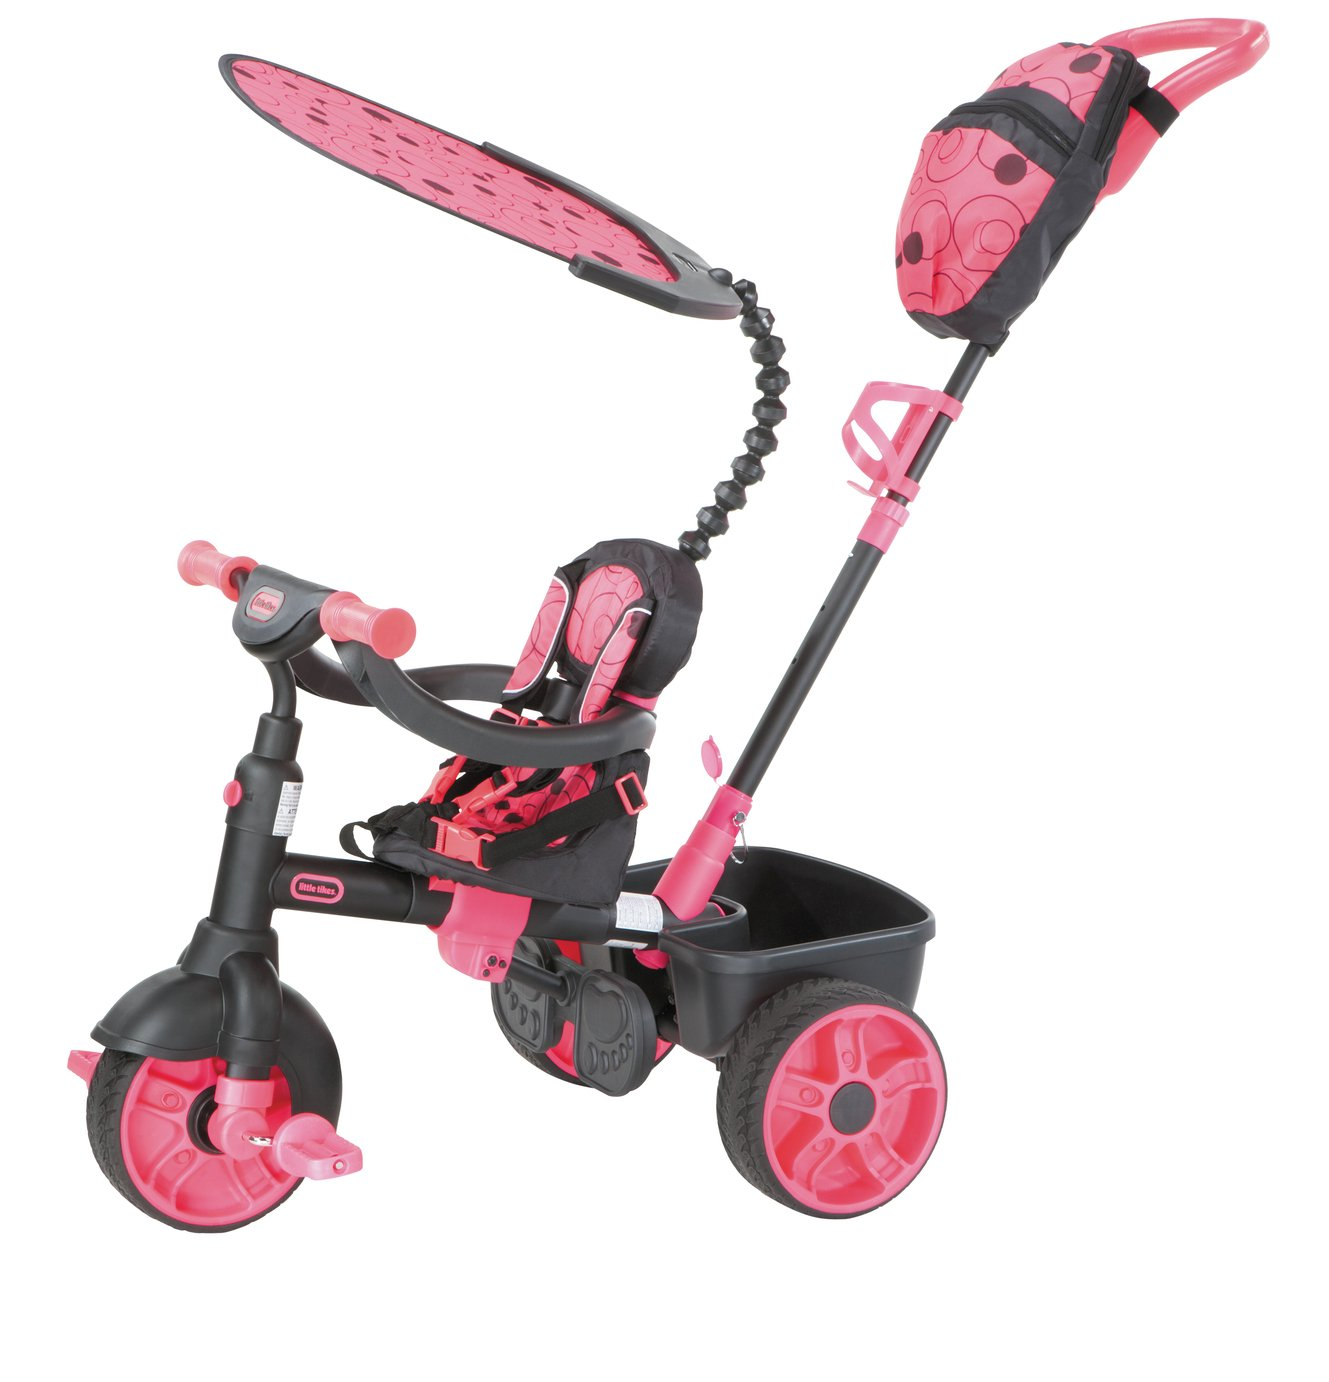 Image of Little Tikes 4-in-1 Deluxe Trike - Neon Pink